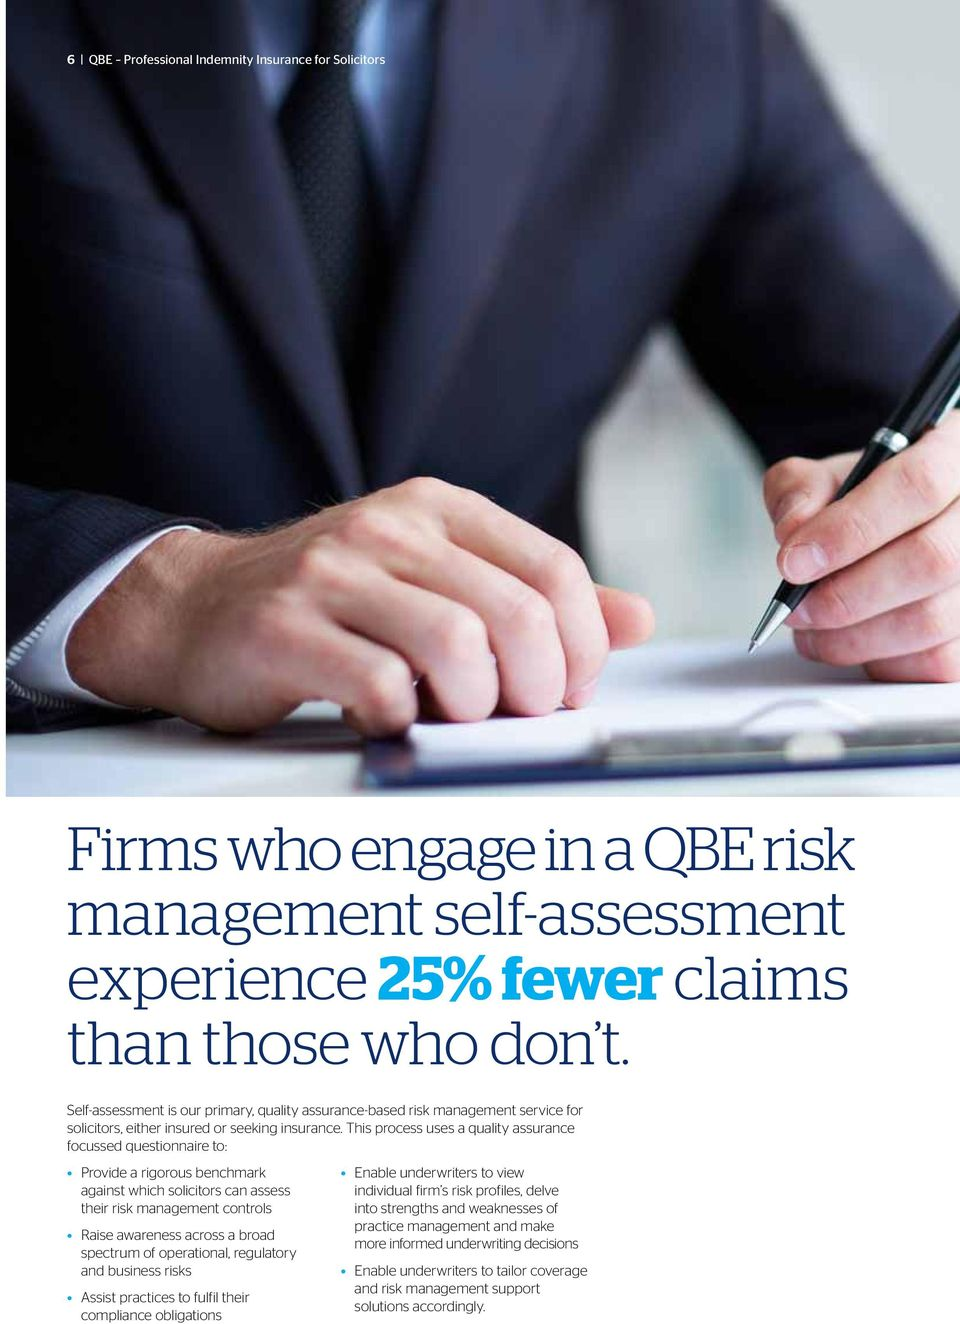 This process uses a quality assurance focussed questionnaire to: Provide a rigorous benchmark against which solicitors can assess their risk management controls Raise awareness across a broad